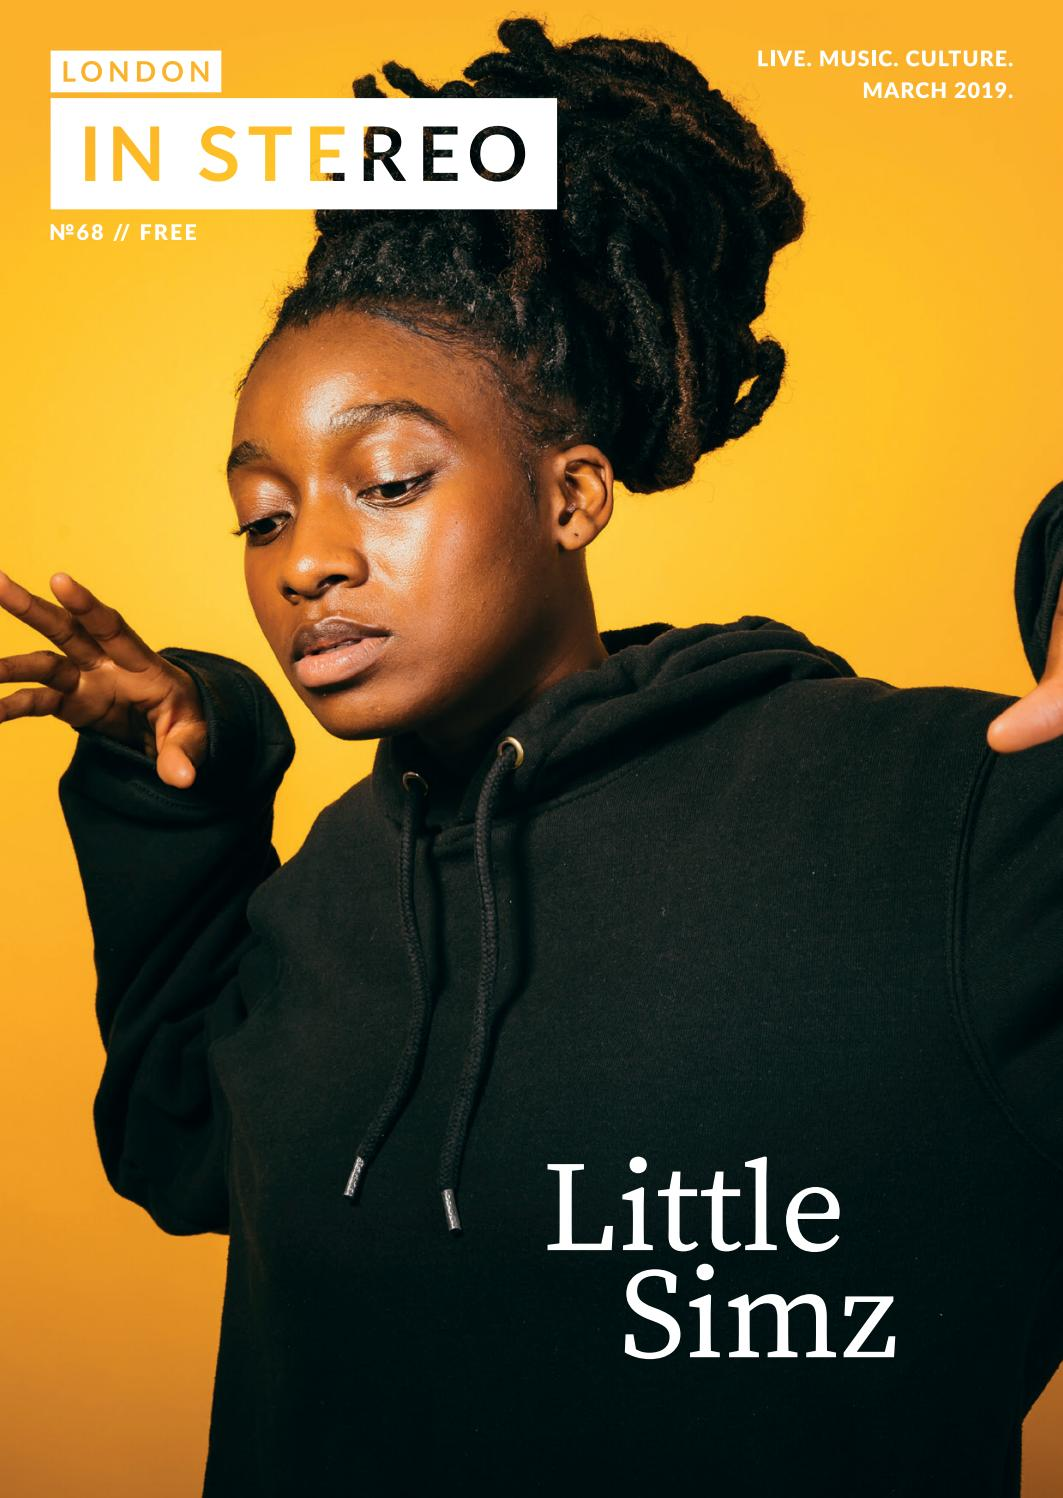 London in Stereo // Little Simz by London In Stereo - issuu